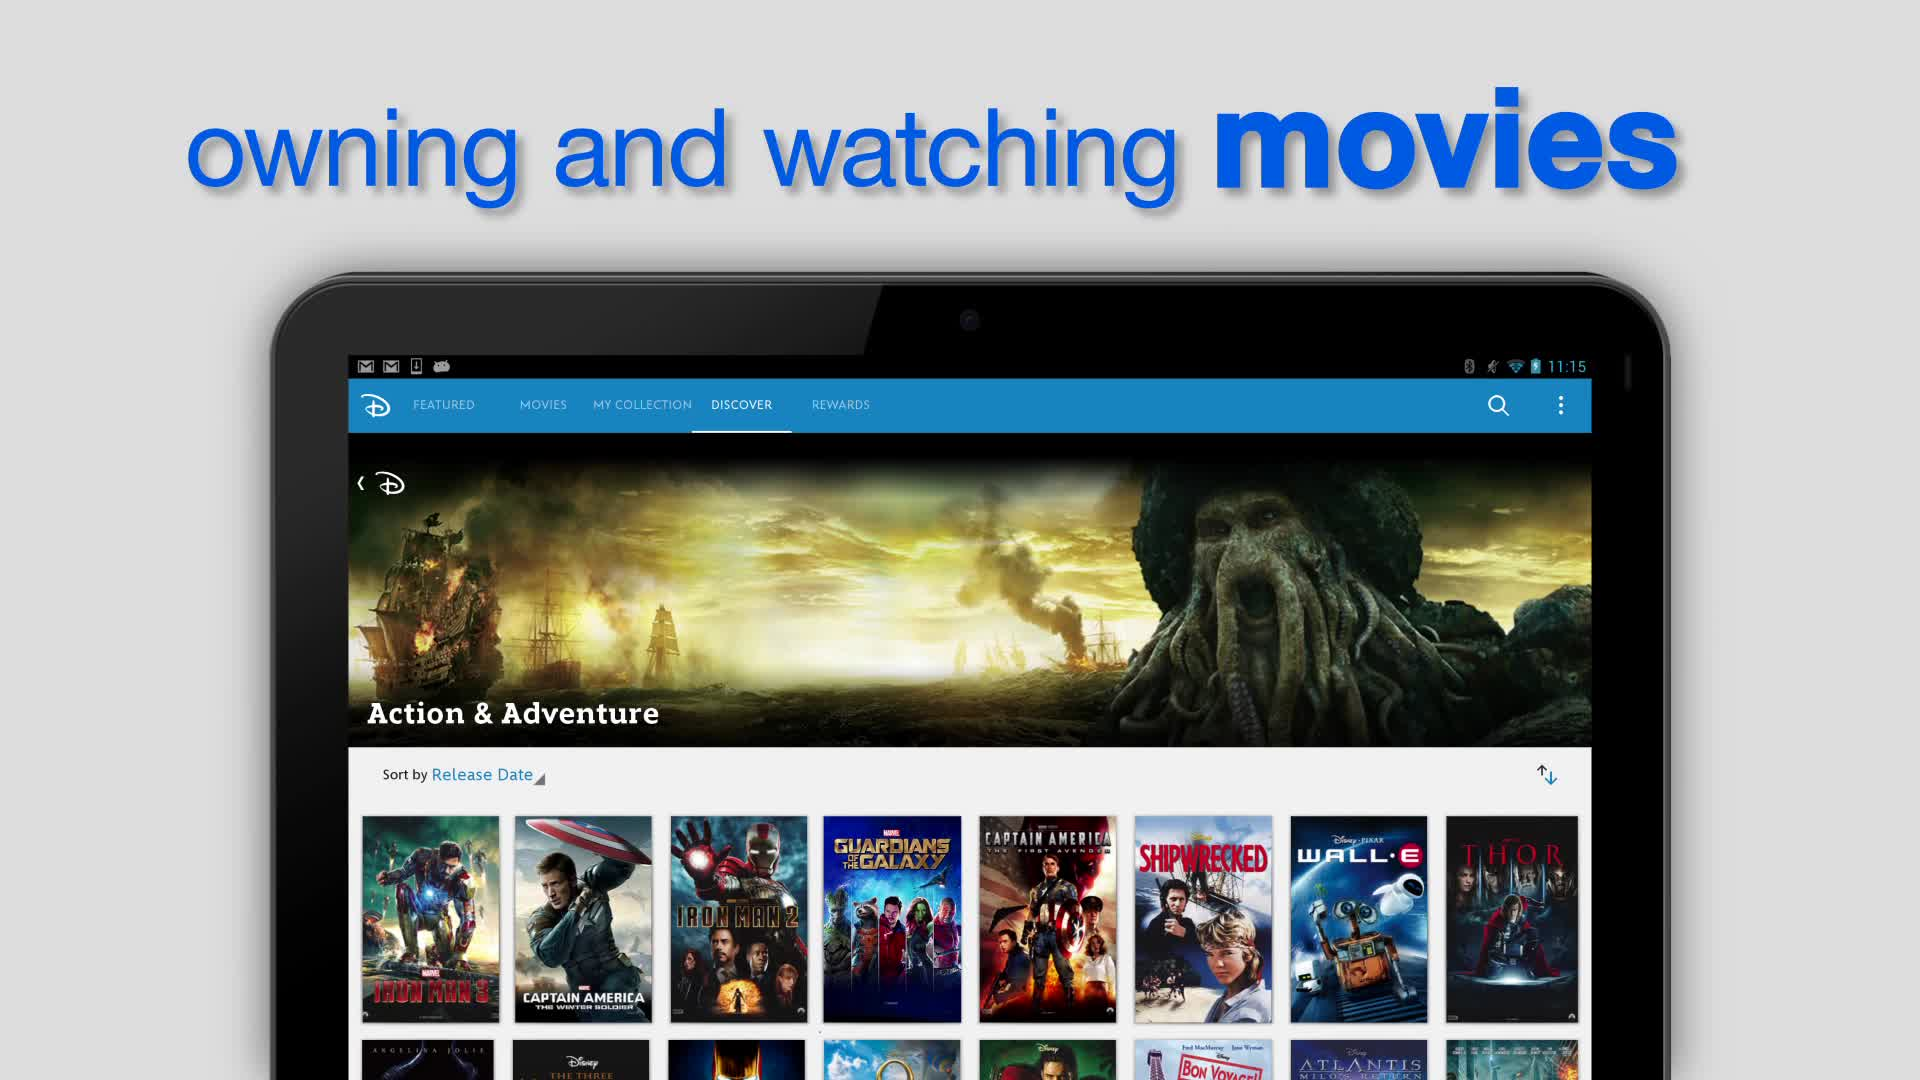 Watch your favorite Disney, Marvel and Pixar movies across your devices through Disney Movies Anywhere. Learn more: http://www.disneymoviesanywhere.com